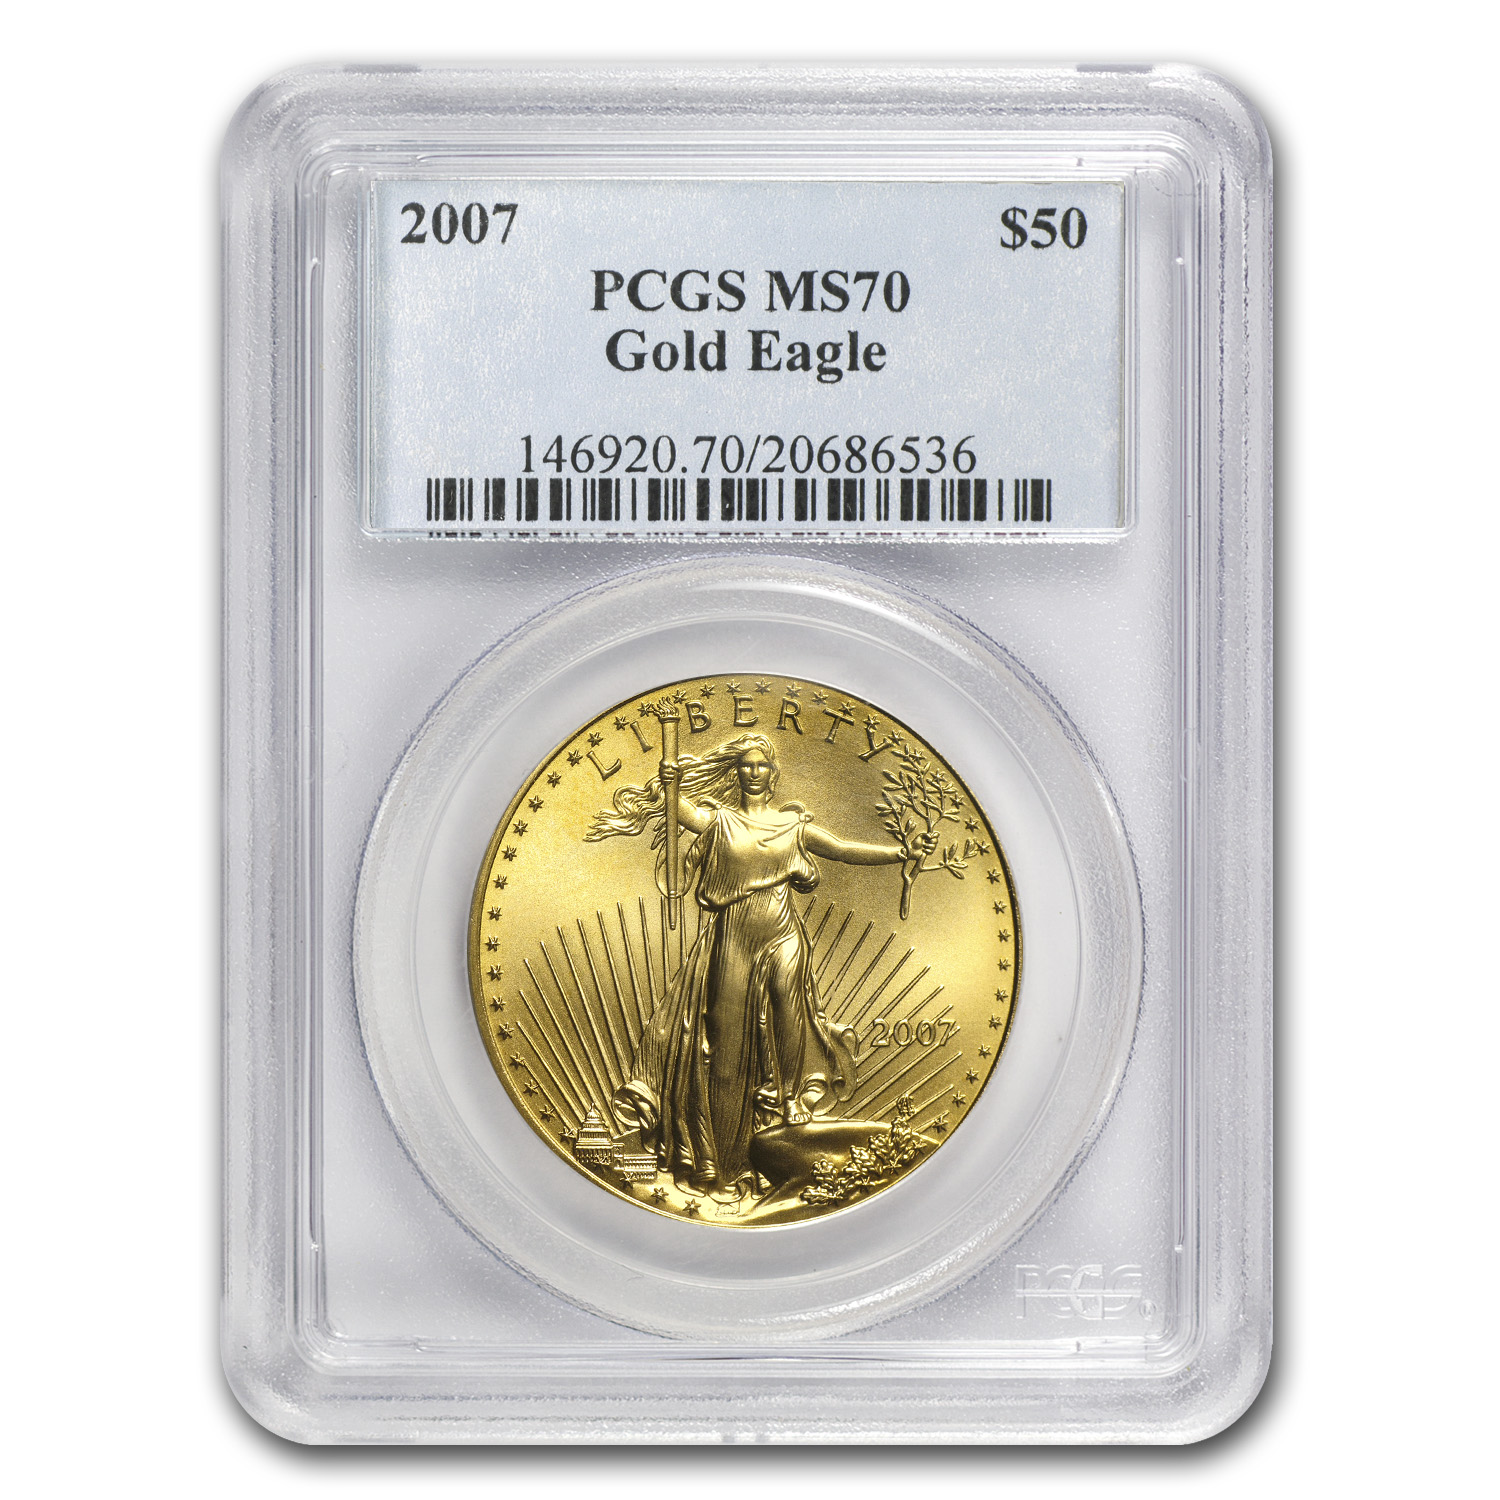 2007 1 oz Gold American Eagle MS-70 PCGS